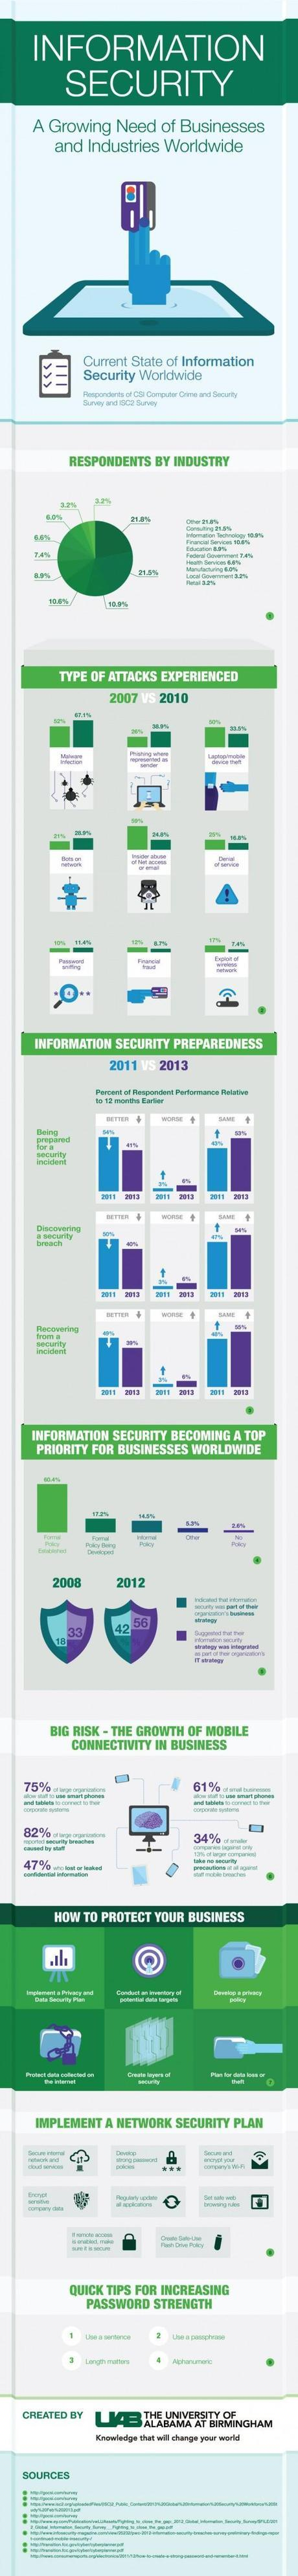 Information Security: A Growing Need of Businesses